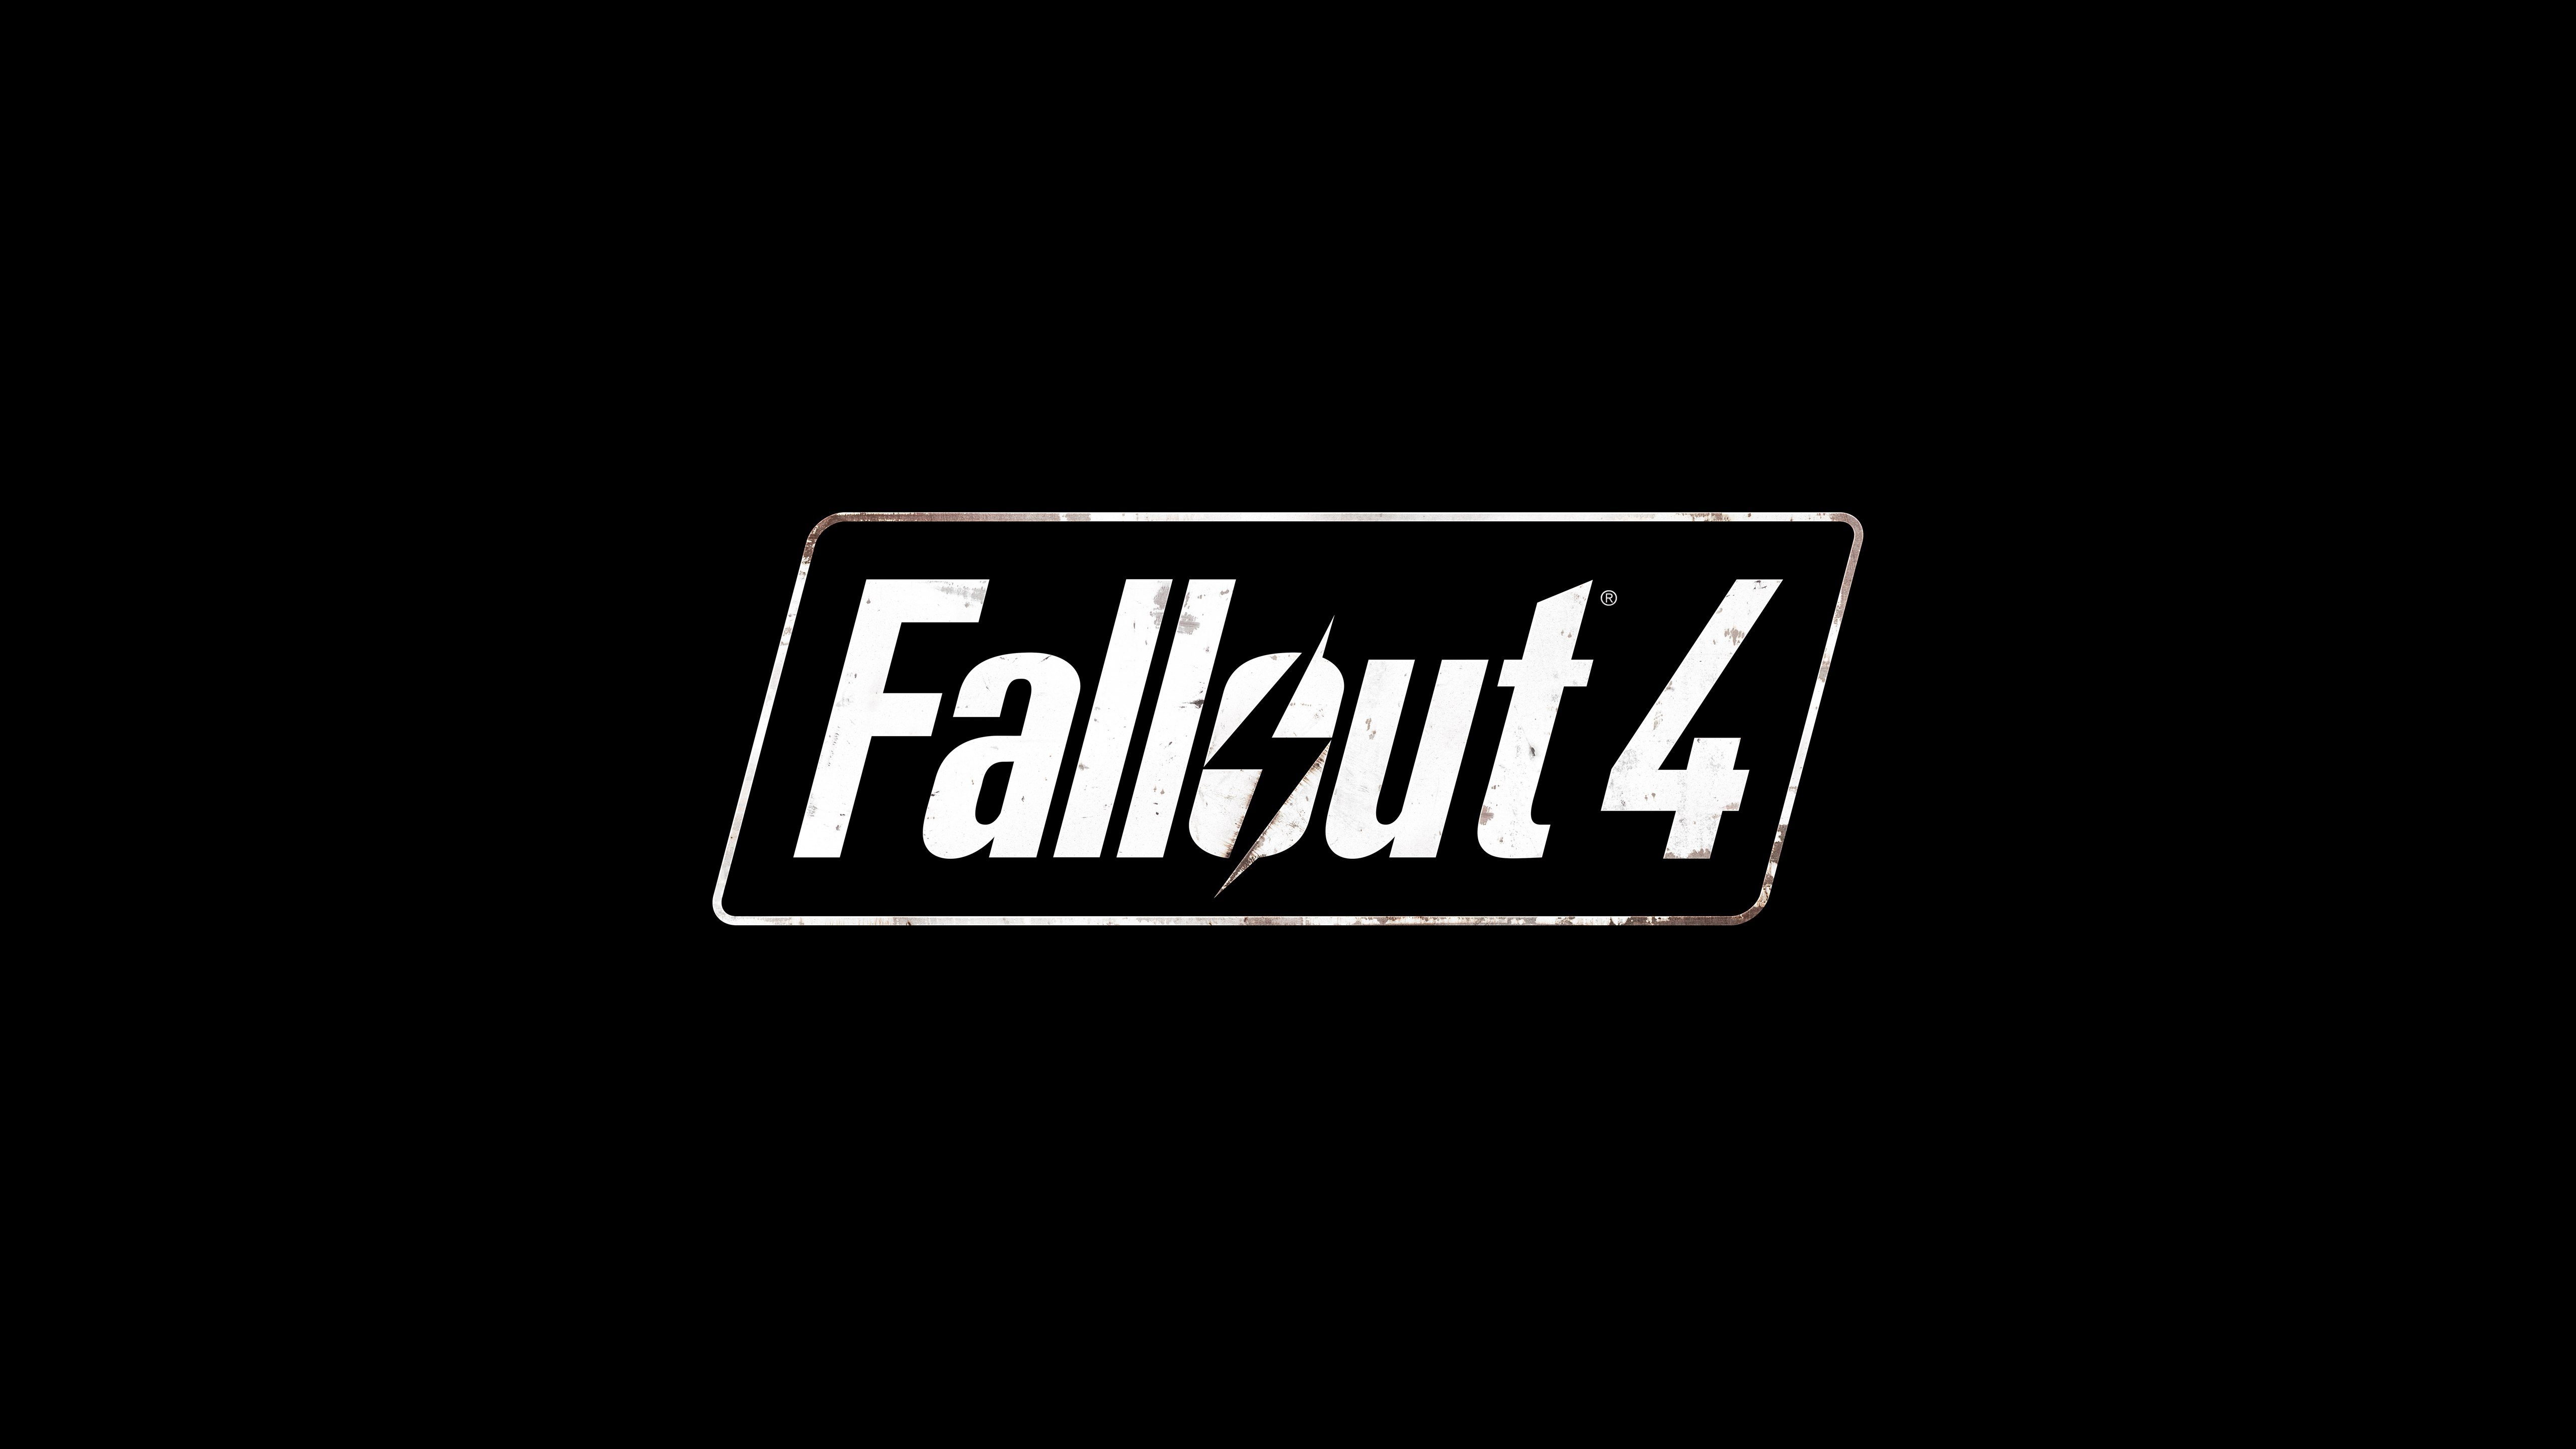 Fallout 4 Logo 5k Hd Games 4k Wallpapers Images